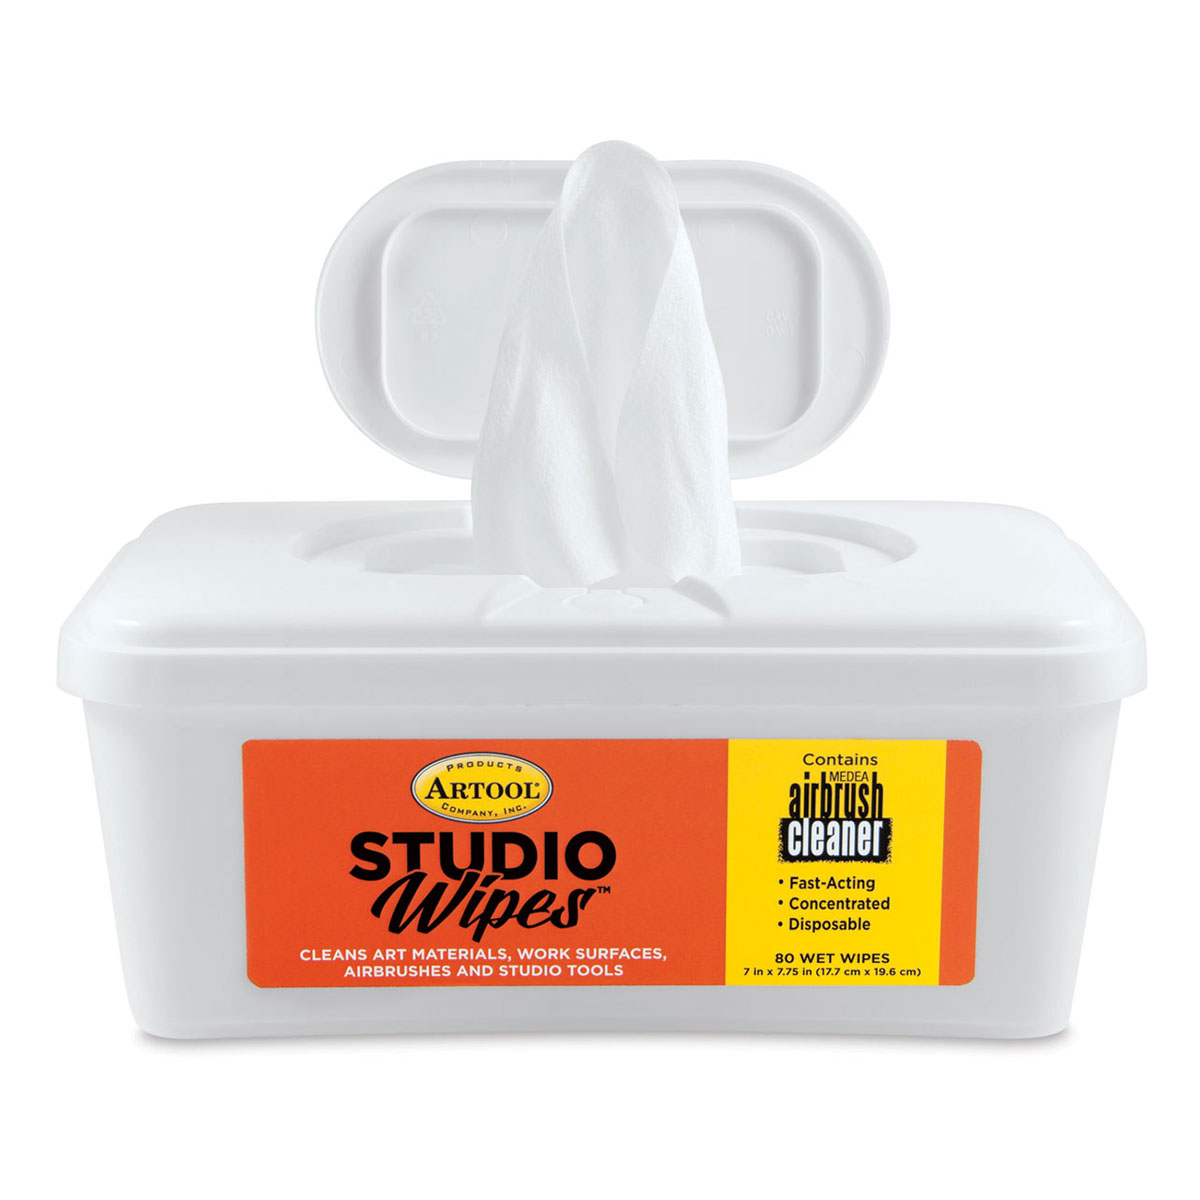 Artool Studio Wipes